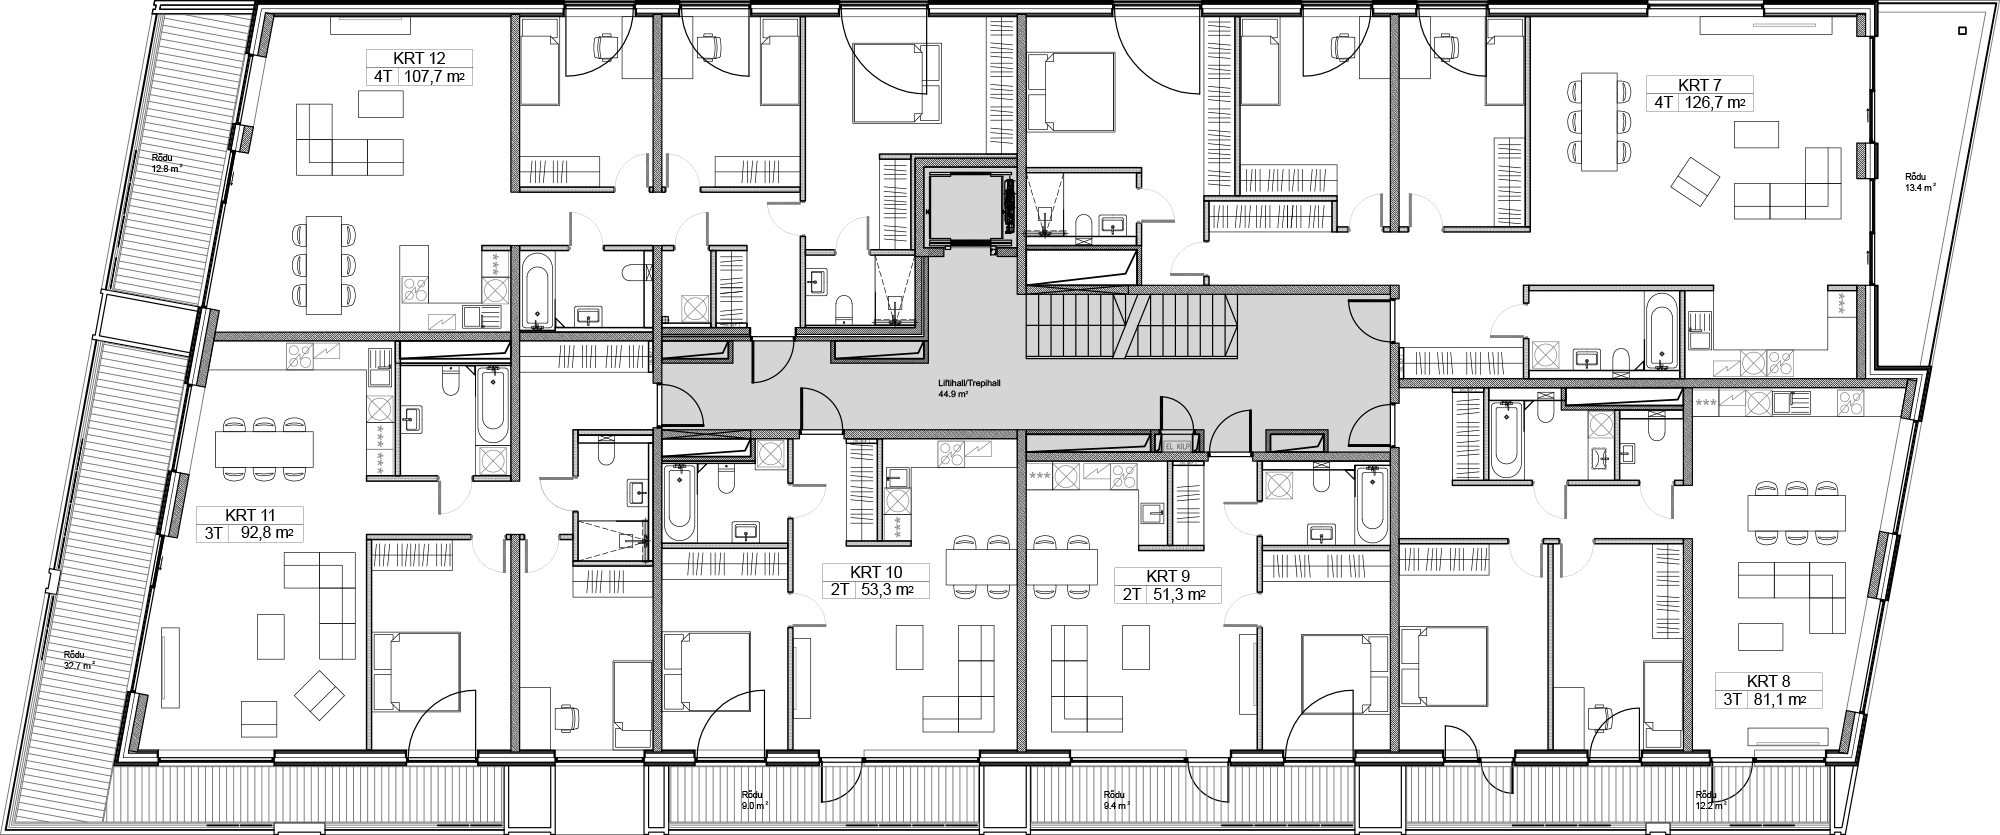 Floor 3 plan of Kiikri Apartment House A